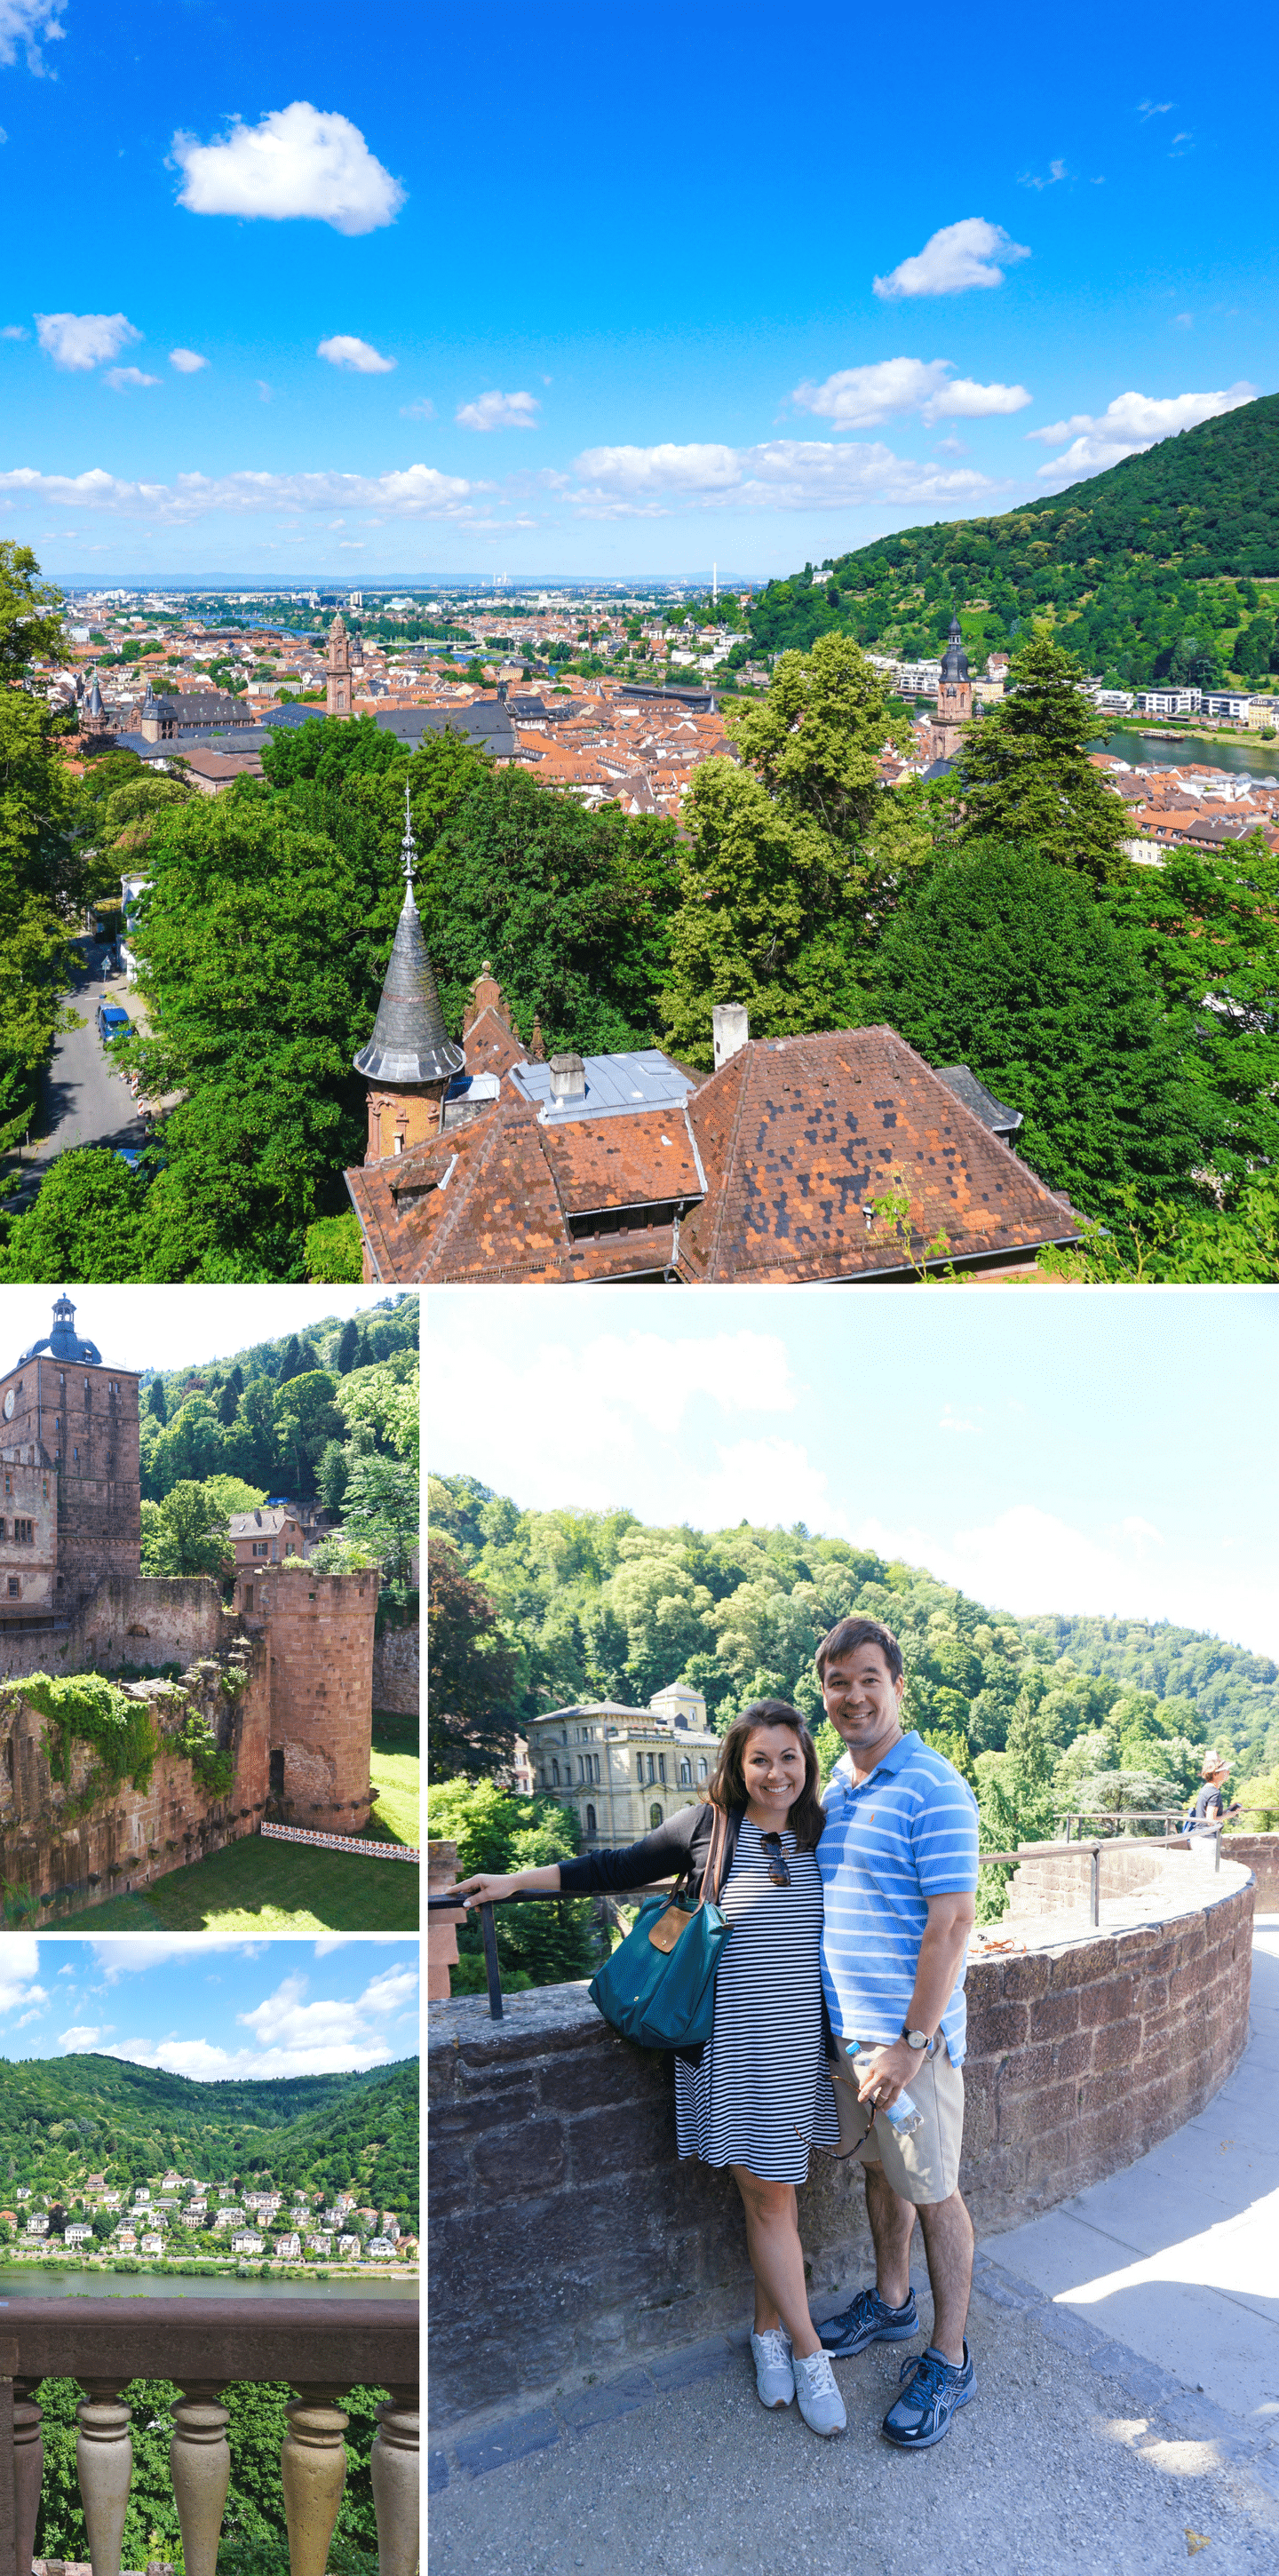 Europe Trip Recap: Heidelberg Germany